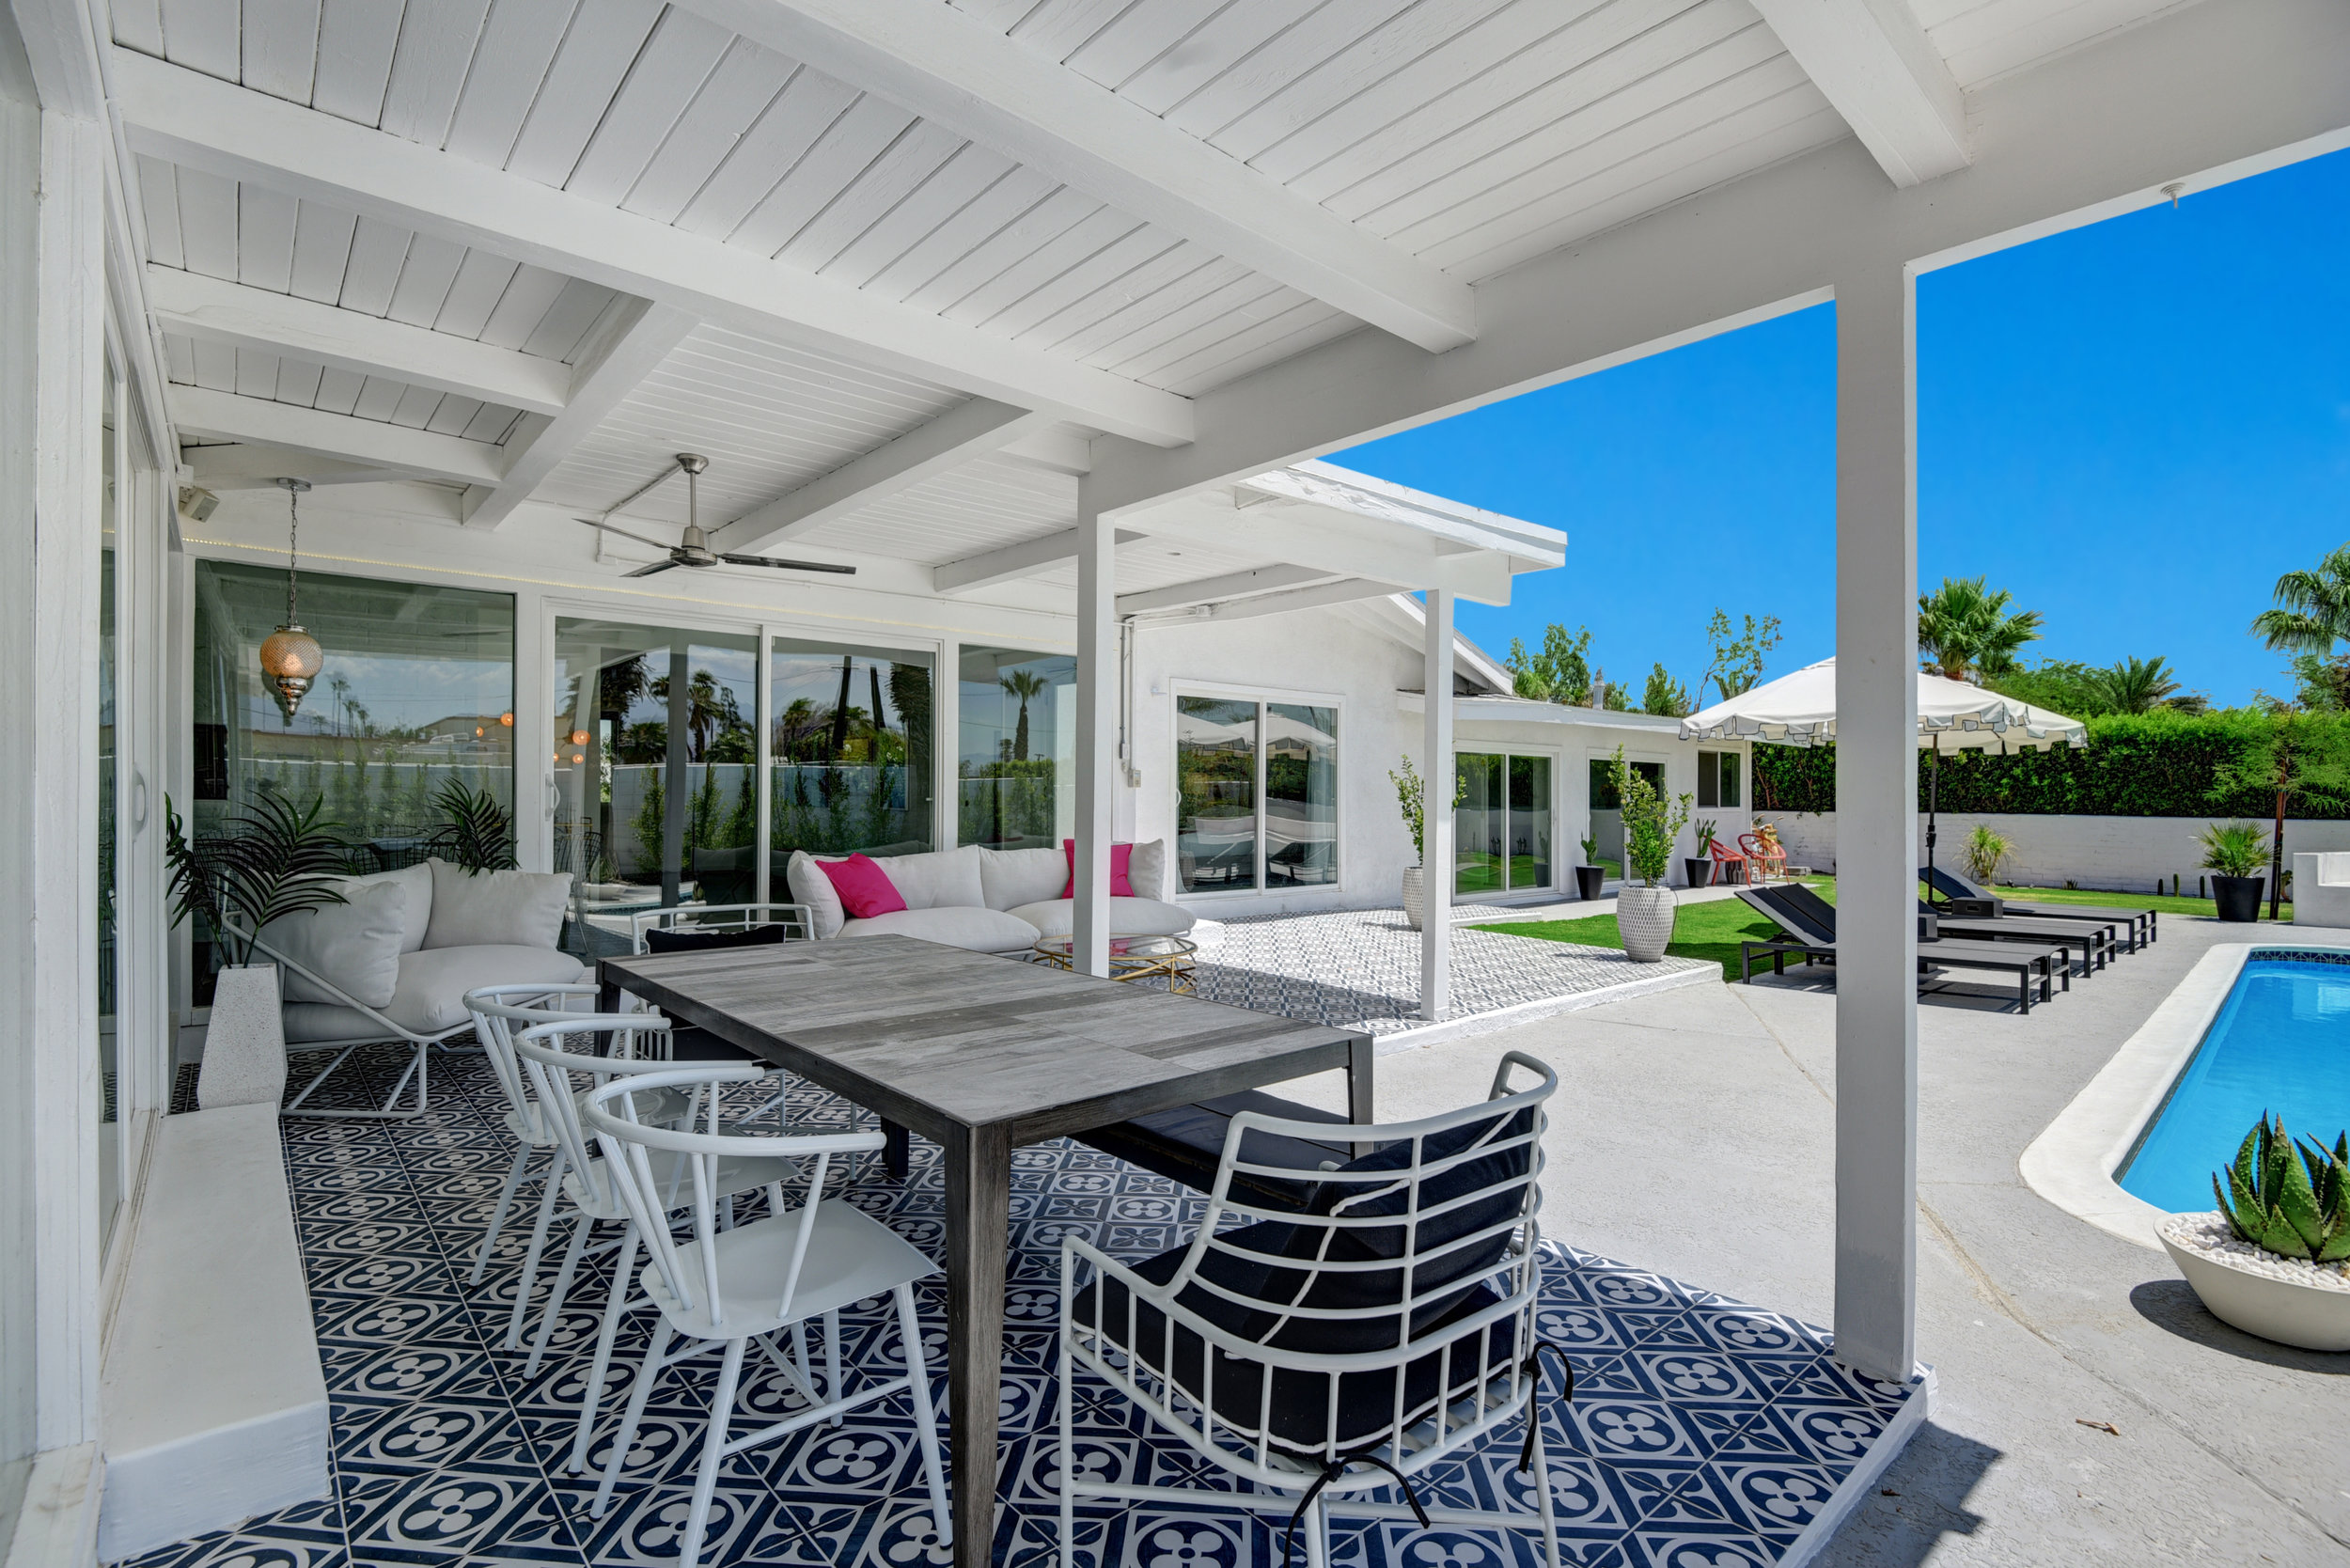 COVERED PATIO TO CASITA AND POOL.jpg